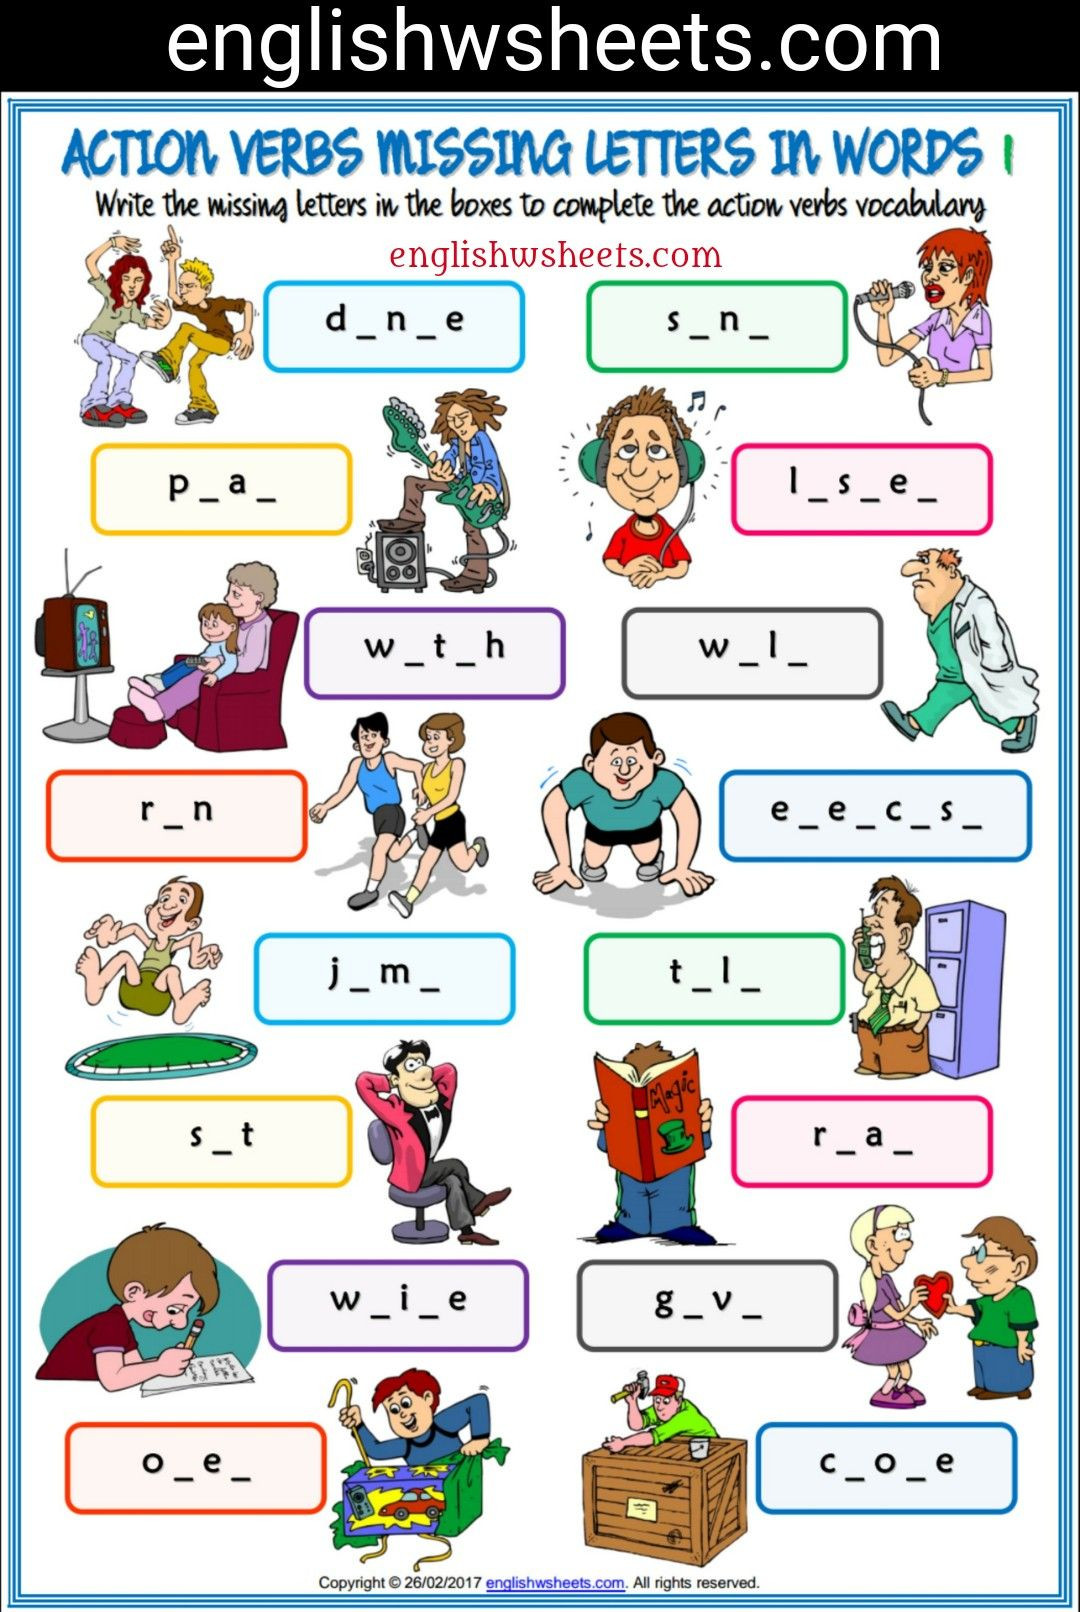 Verbs Worksheets for Middle School Action Verbs Esl Printable Missing Letters In Words